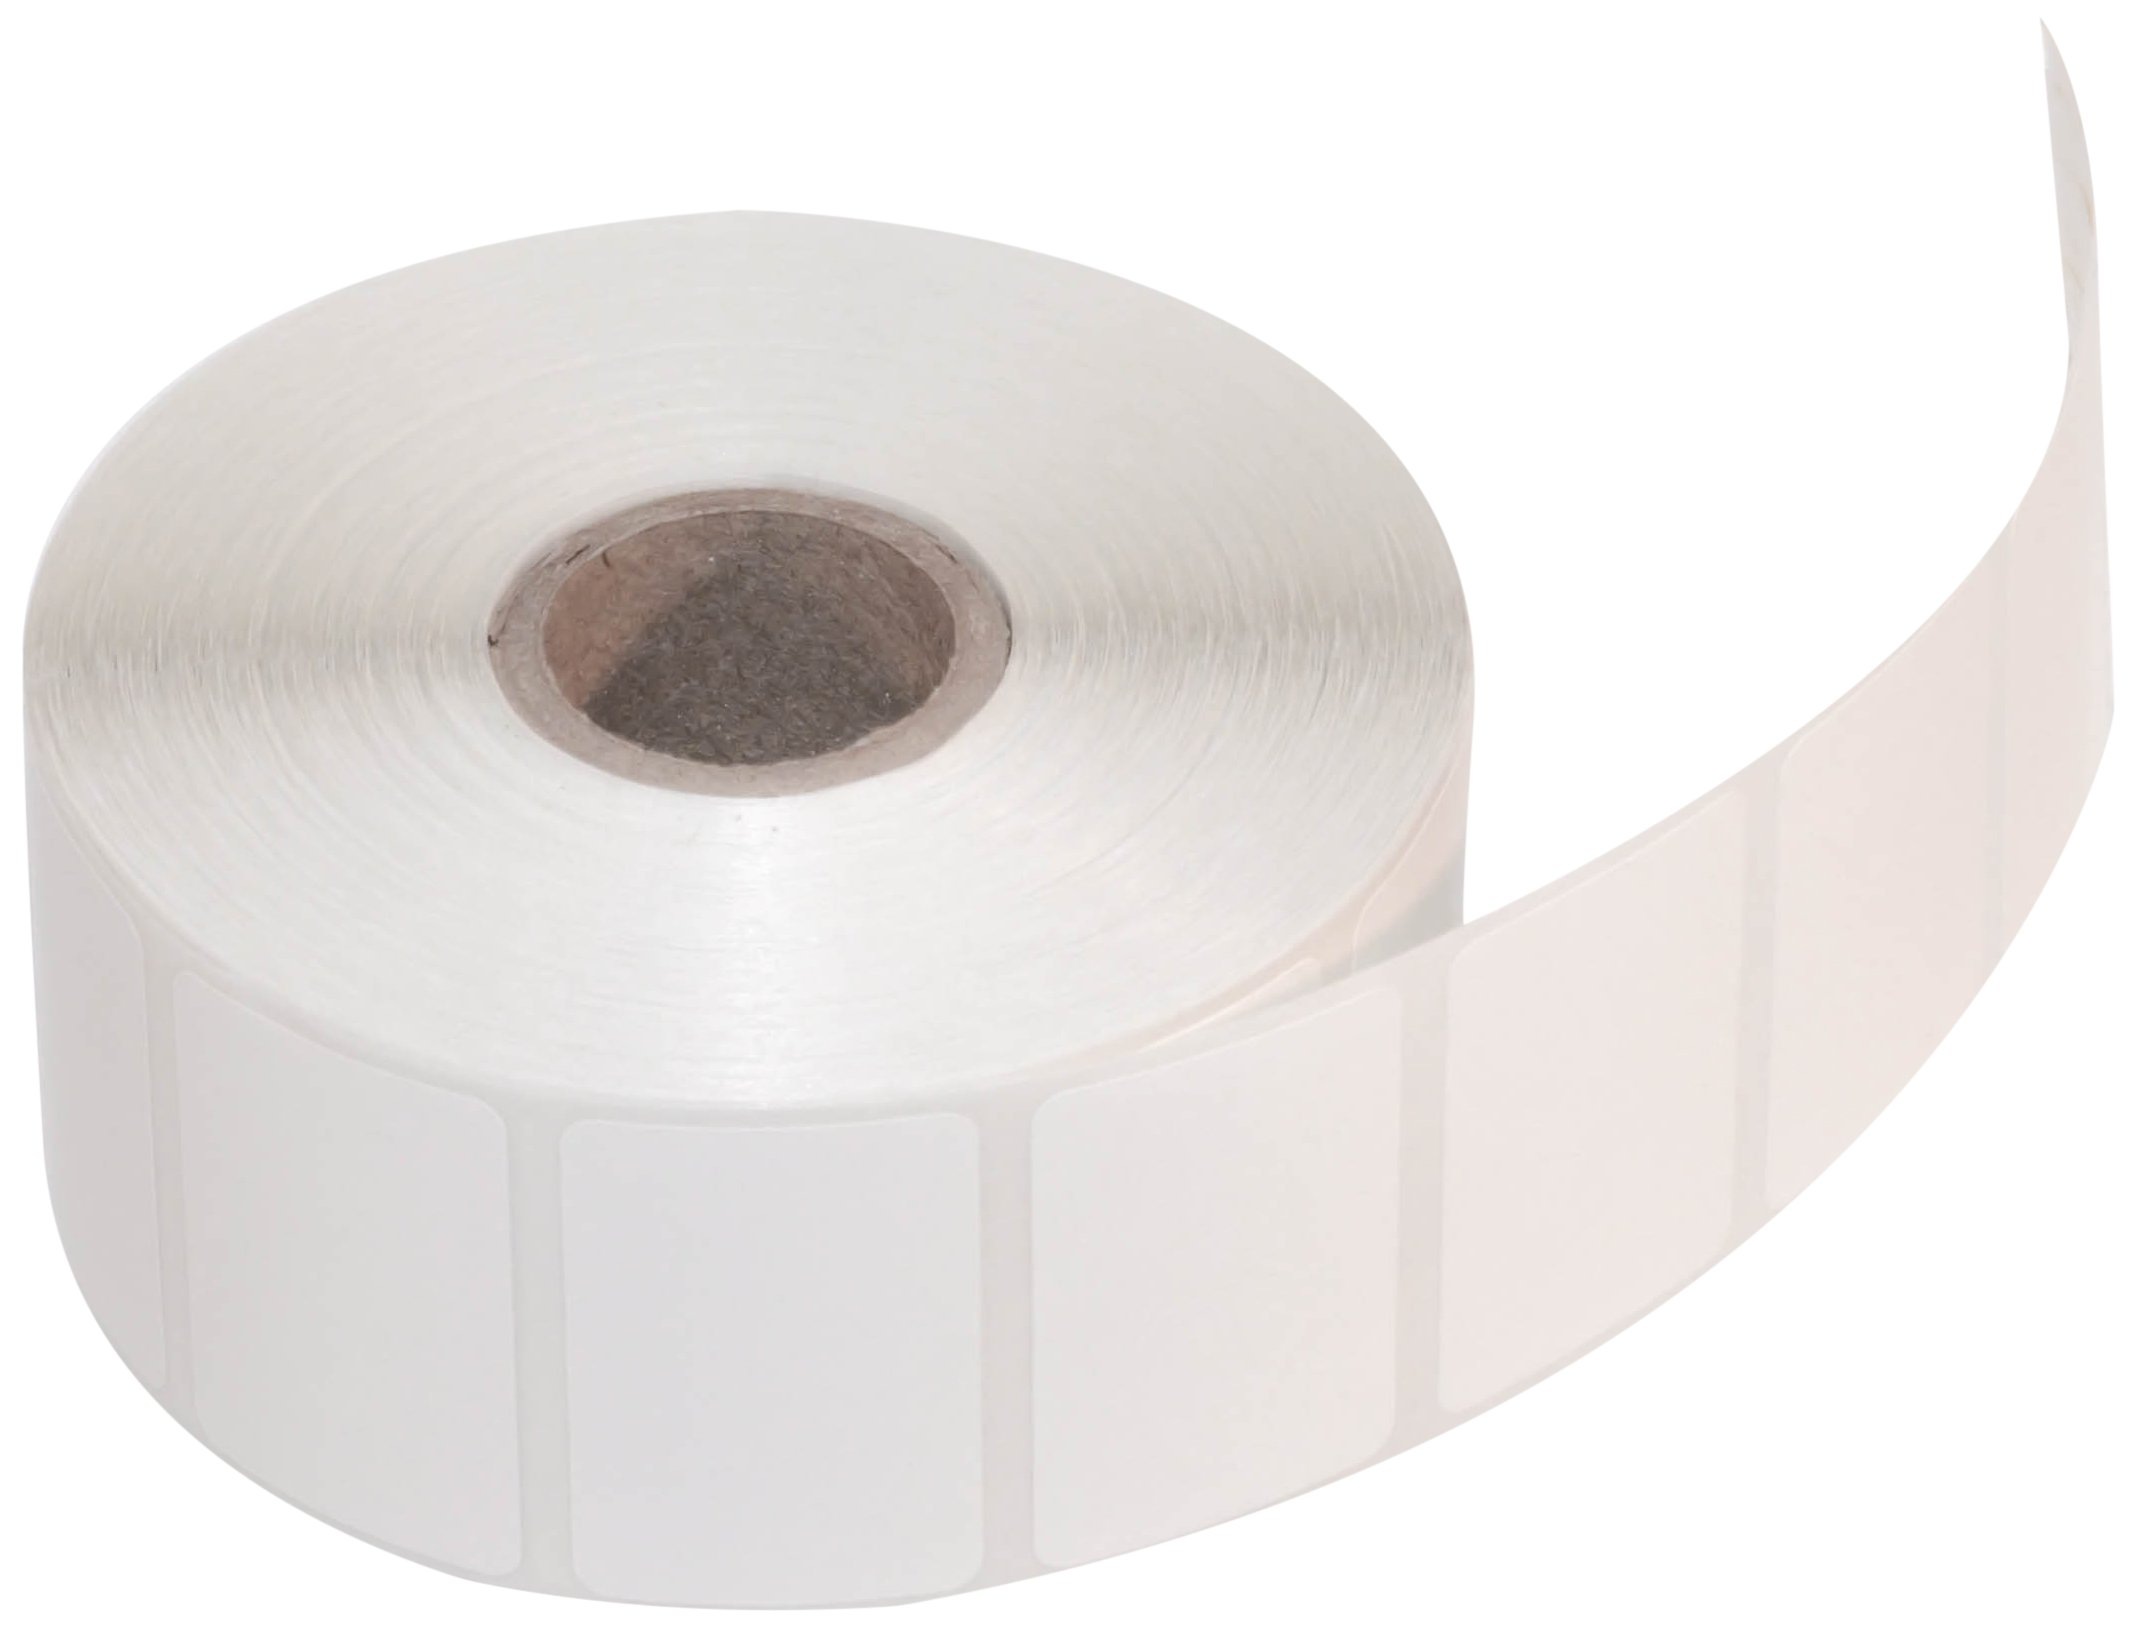 CompuLabel Direct Thermal Labels, 1 1/2 x 1 Inch, White, Roll, Permanent Adhesive, Perforations Between Labels, 1300 per Roll, 12 Rolls per Carton (530548)